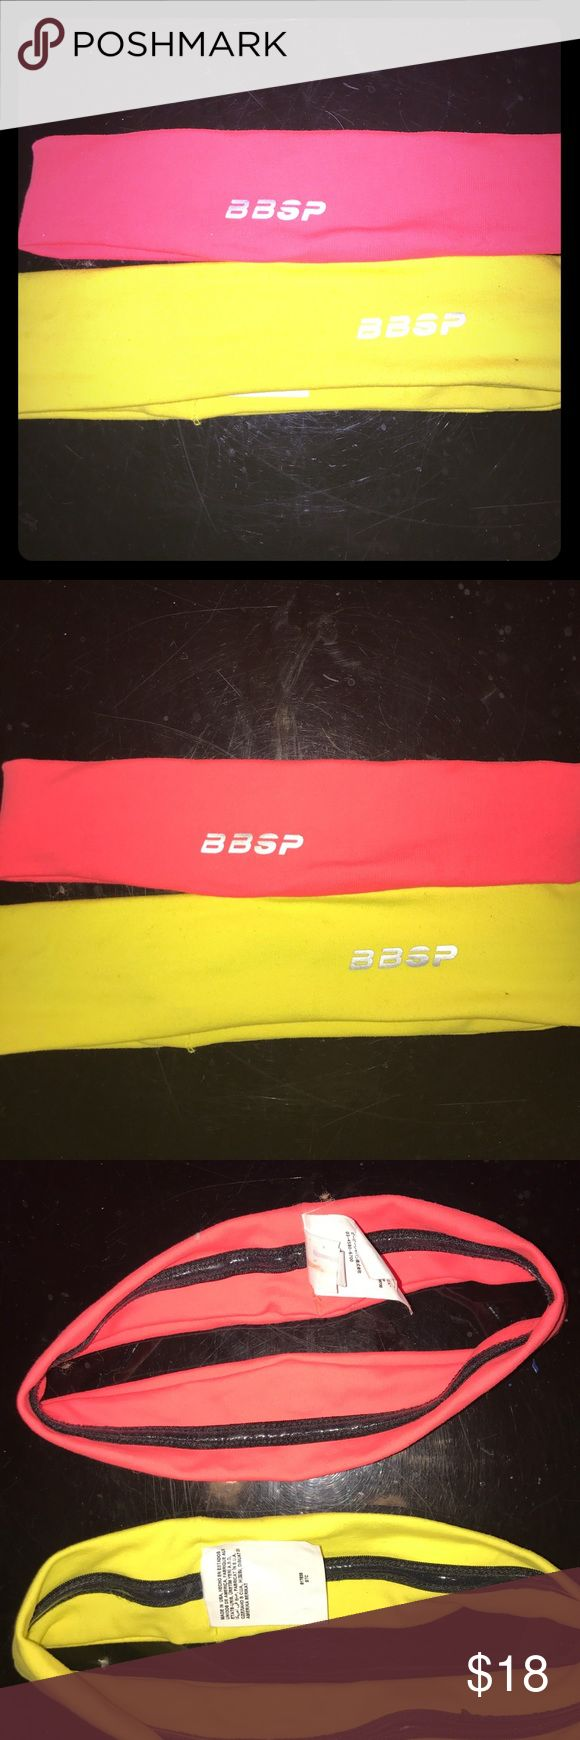 Bebe Sport head bands Like new condition yellow and pinkish mango color bebe Accessories Hair Accessories